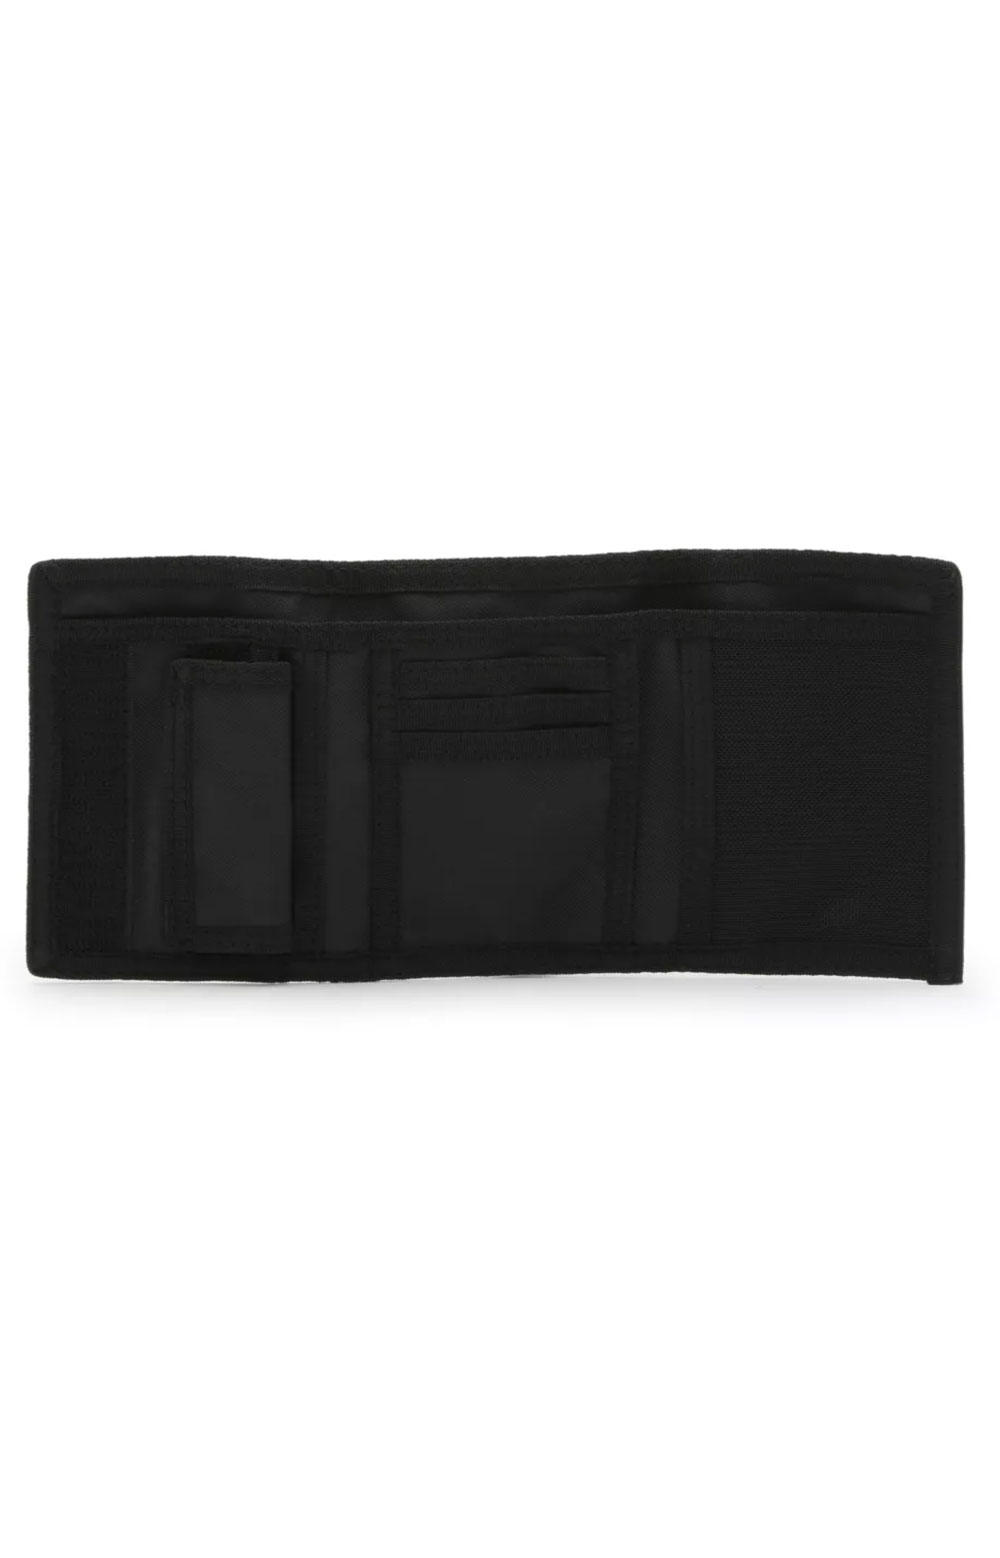 Slipped Wallet - Black Charcoal  2